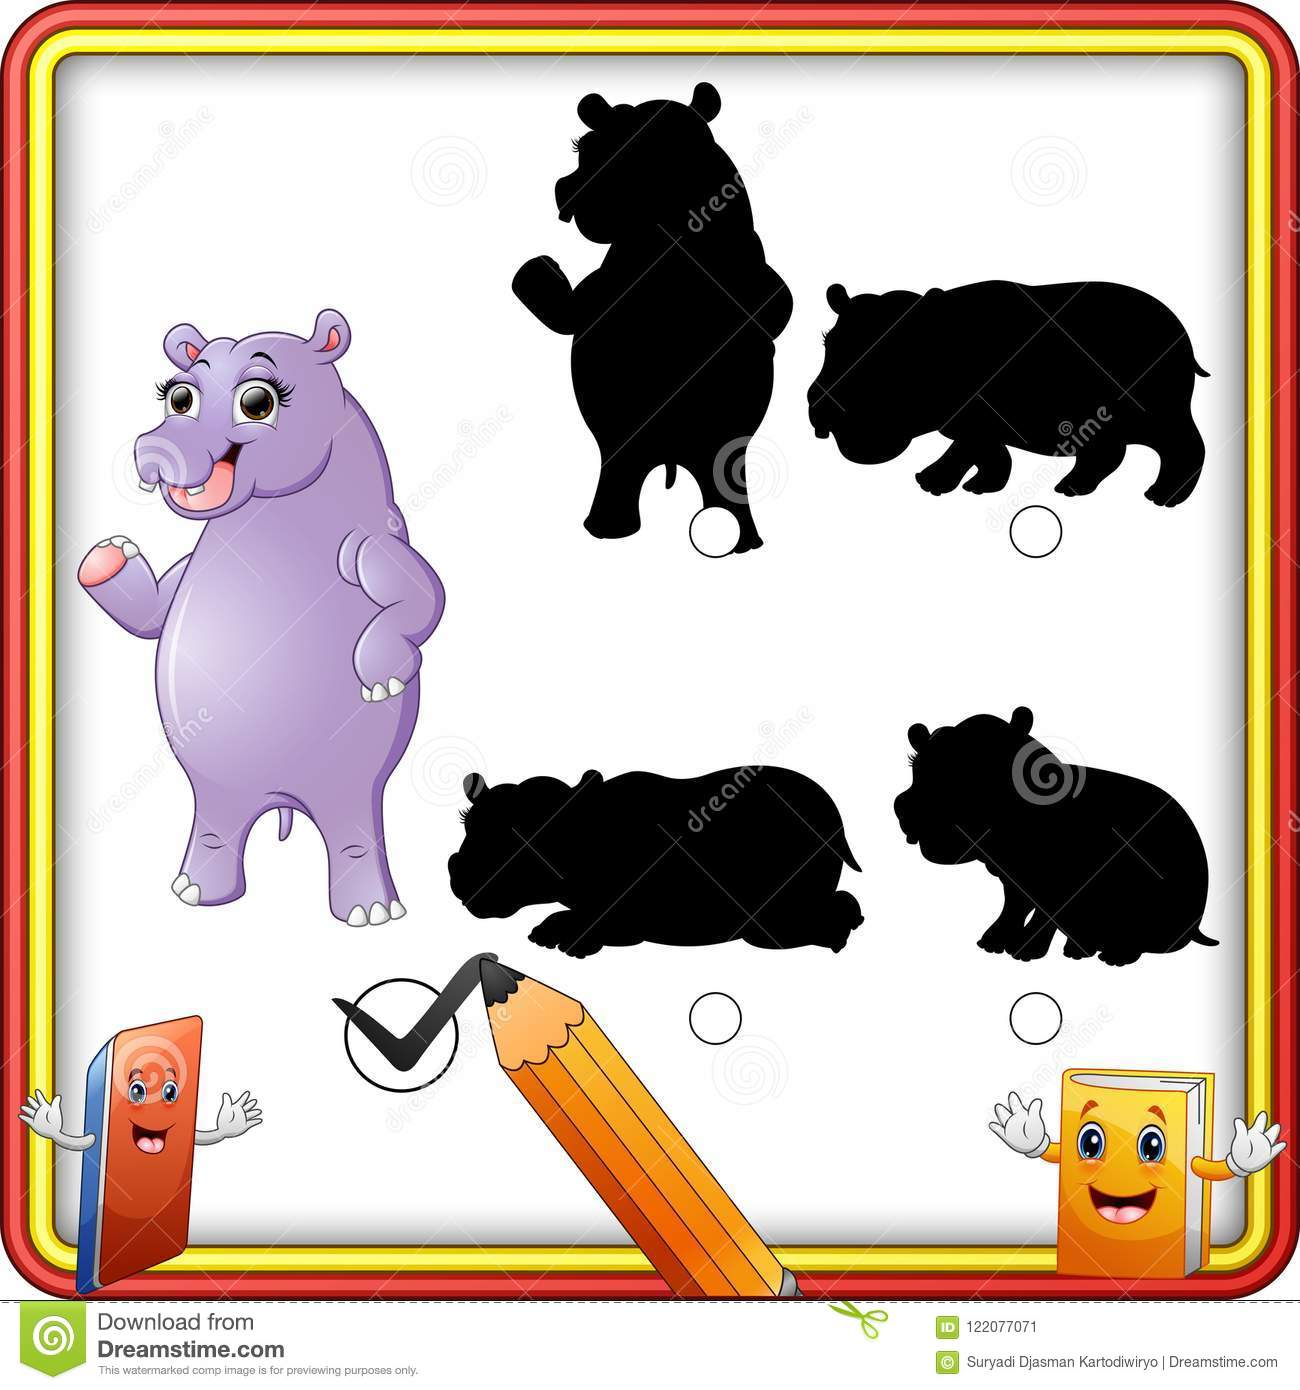 Talking baby hippo iphone game free. Download ipa for ipad.